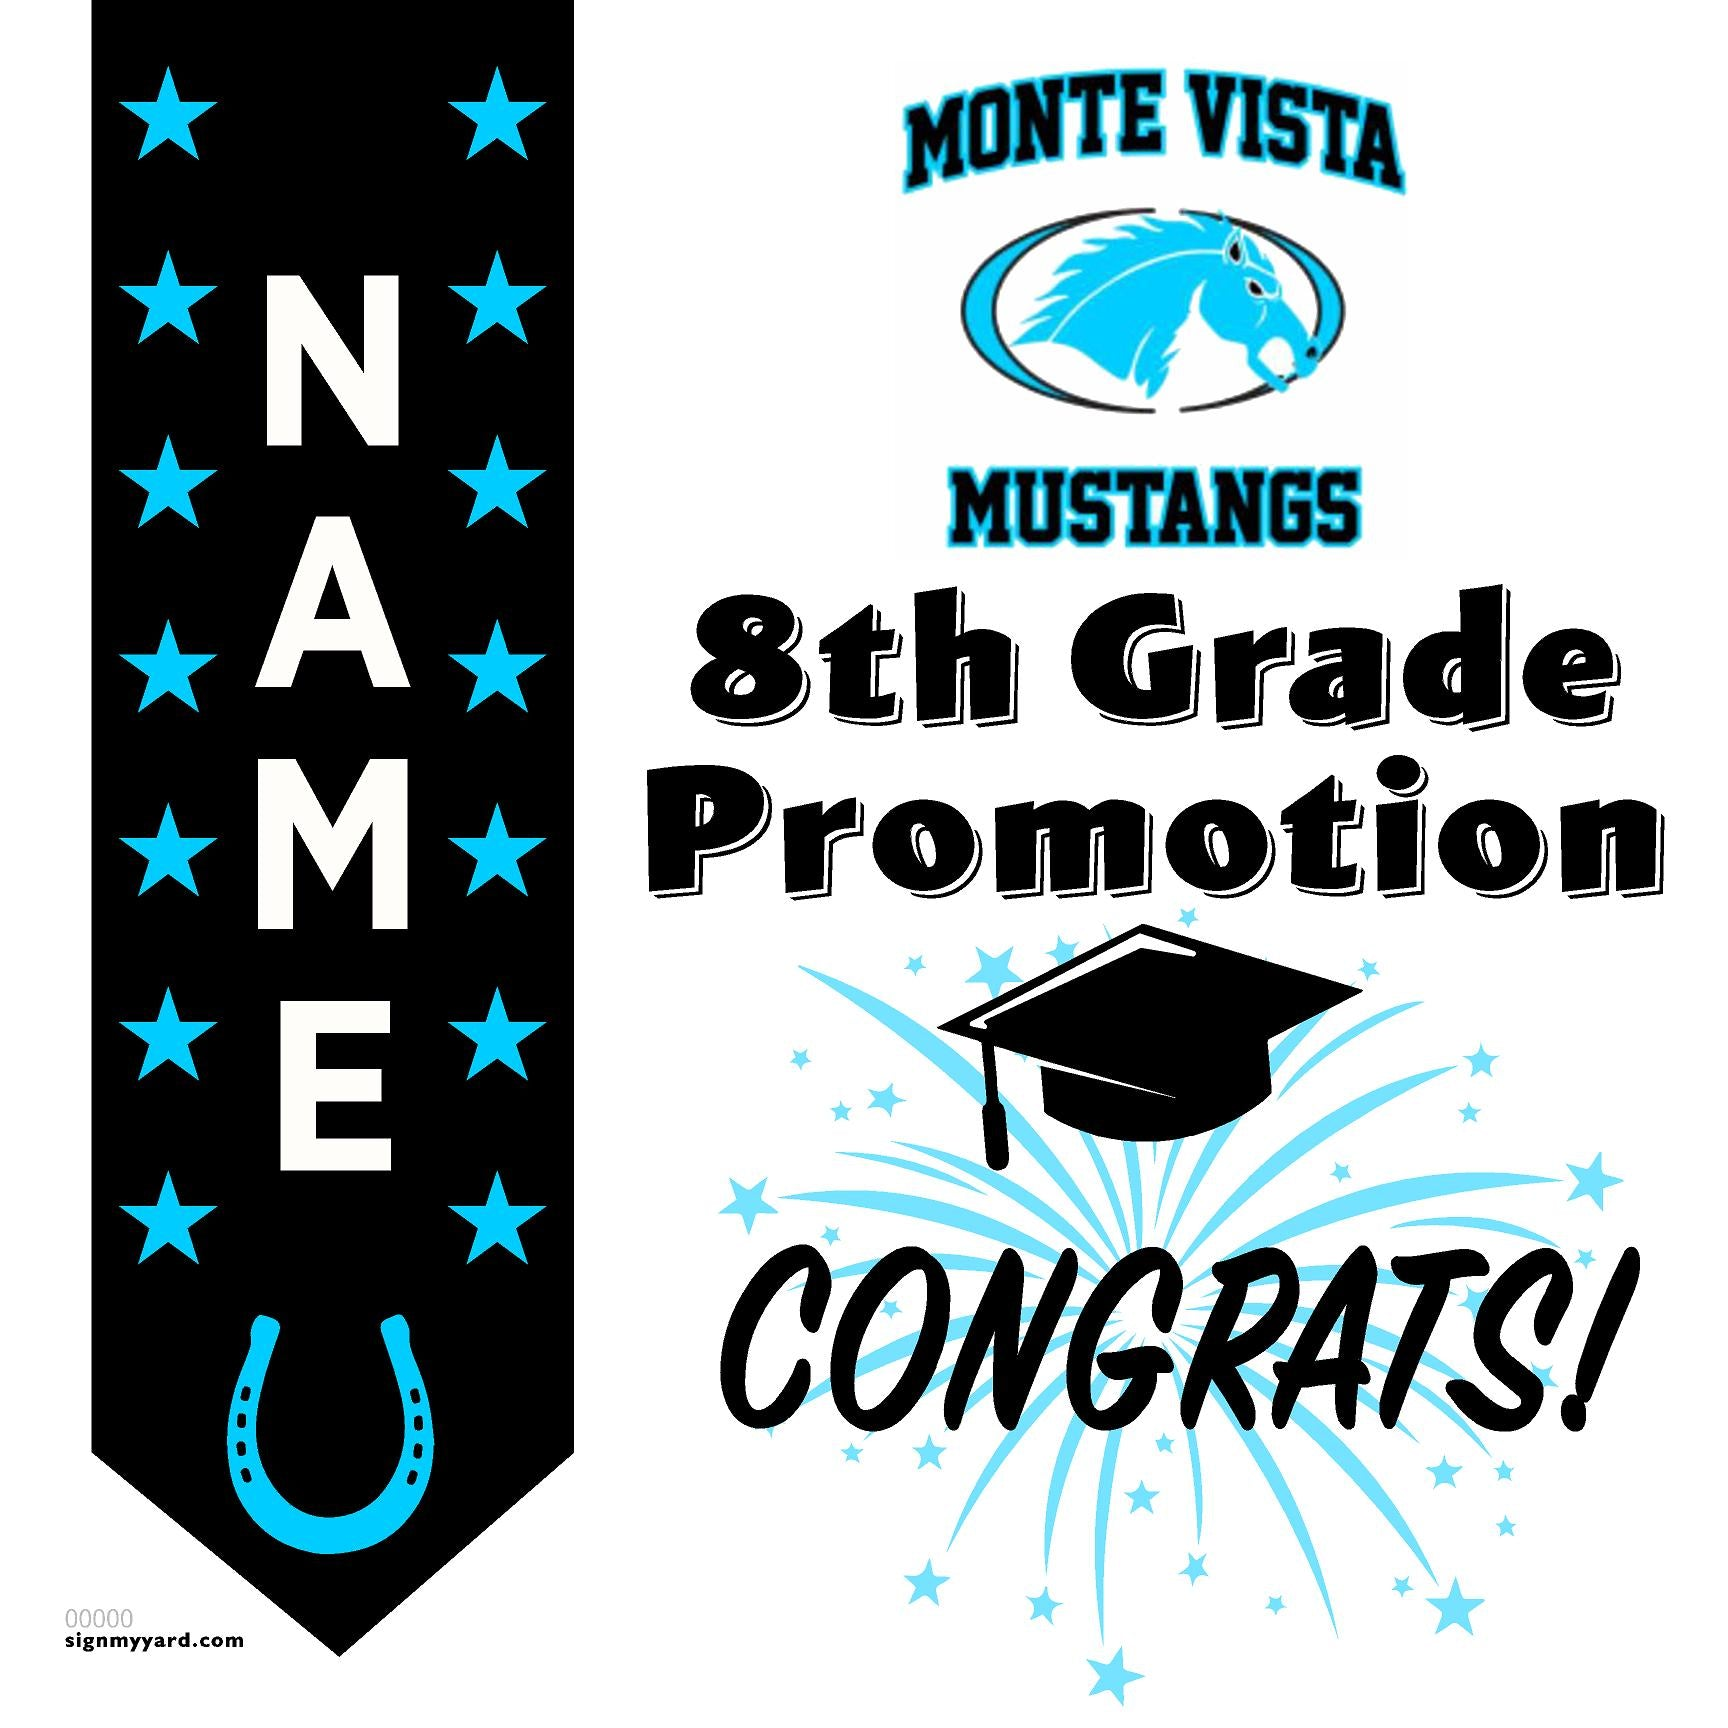 Monte Vista Middle School 8th Grade Promotion 24x24 #shineon2024 Yard Sign (Option B)